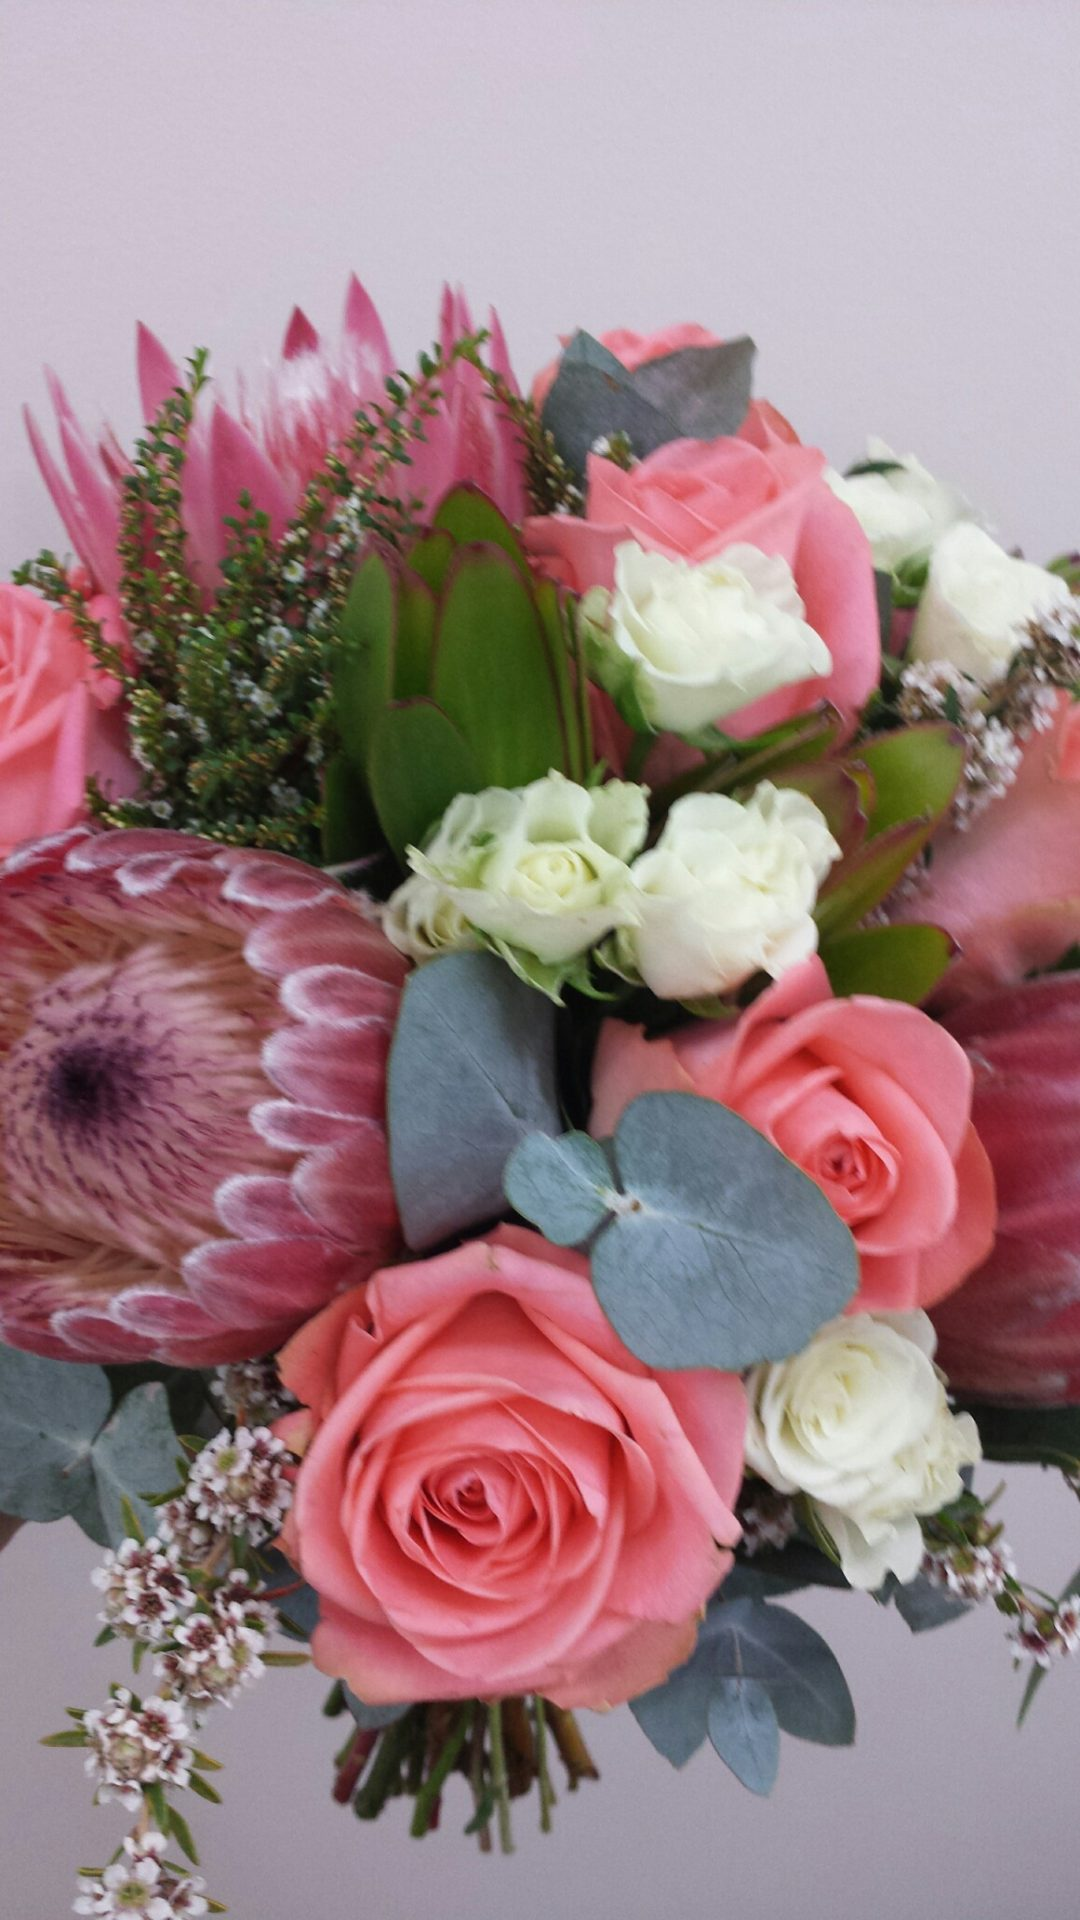 gathered bouquet of natives, roses and blue gum foliage